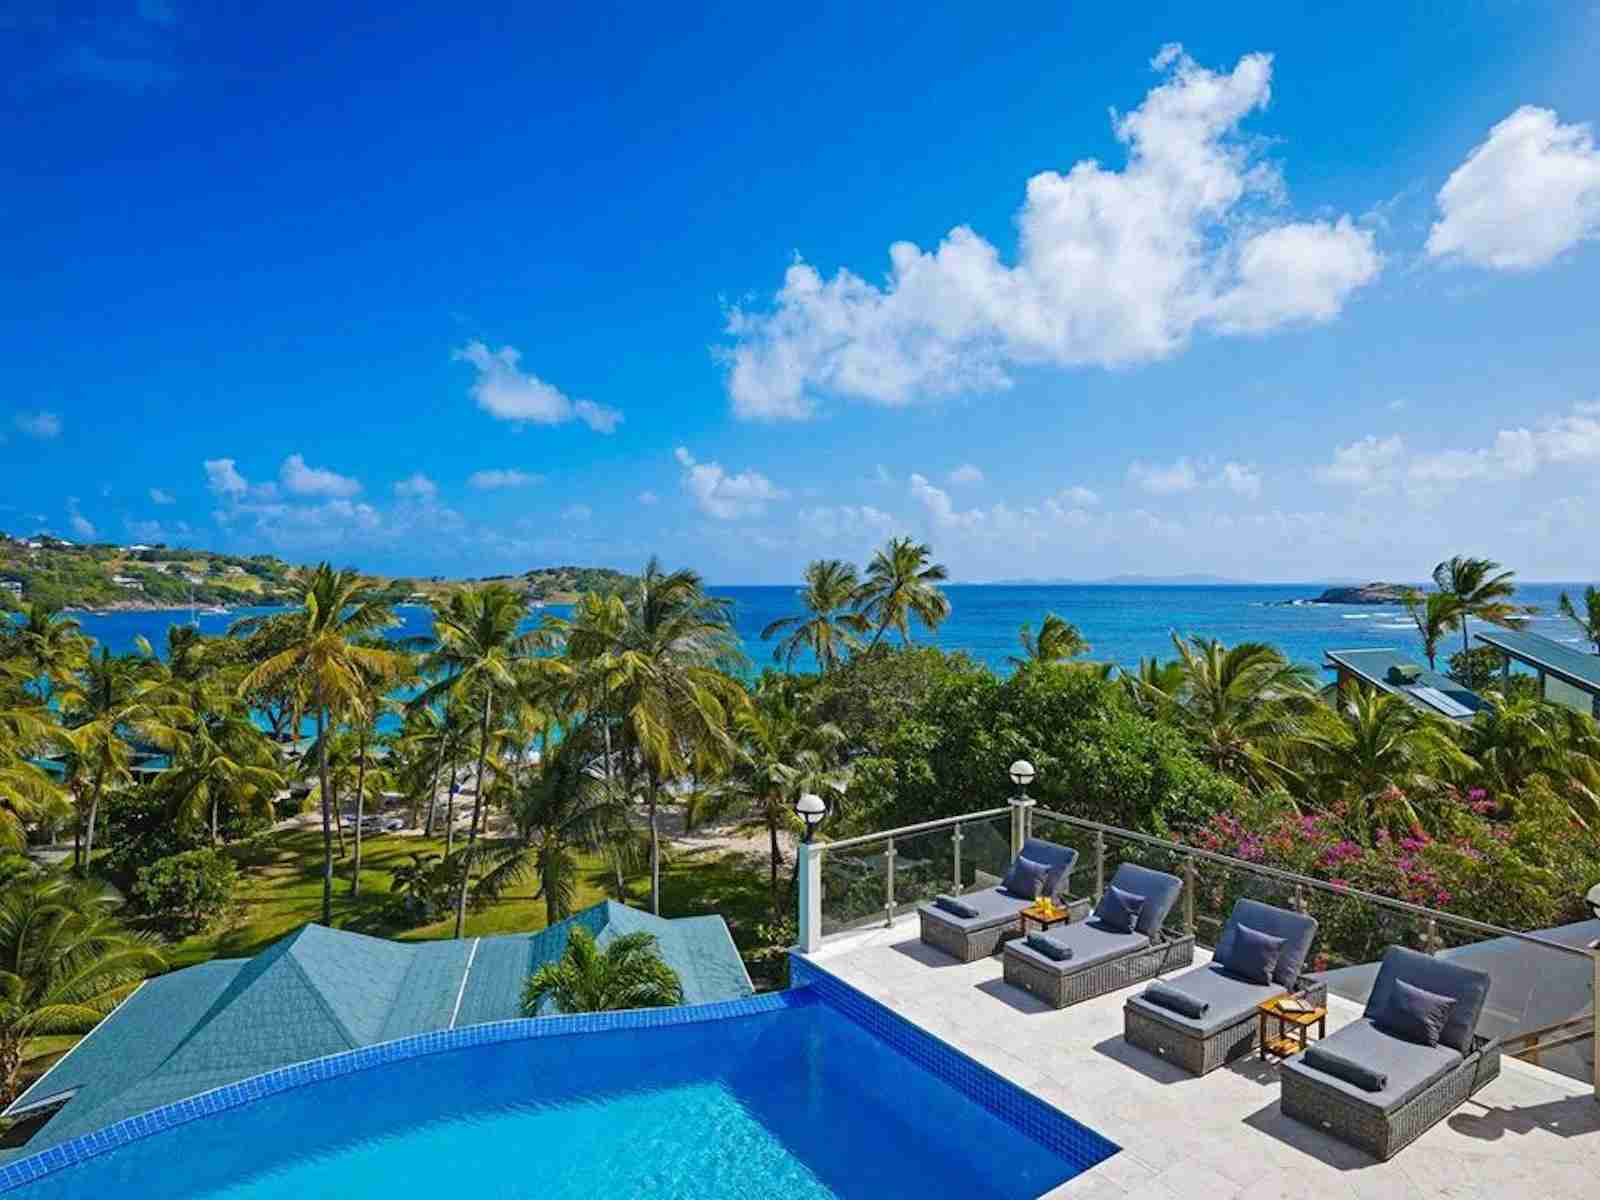 (Bequia Beach Hotel. Photo courtesy of Bequia Beach Hotel)